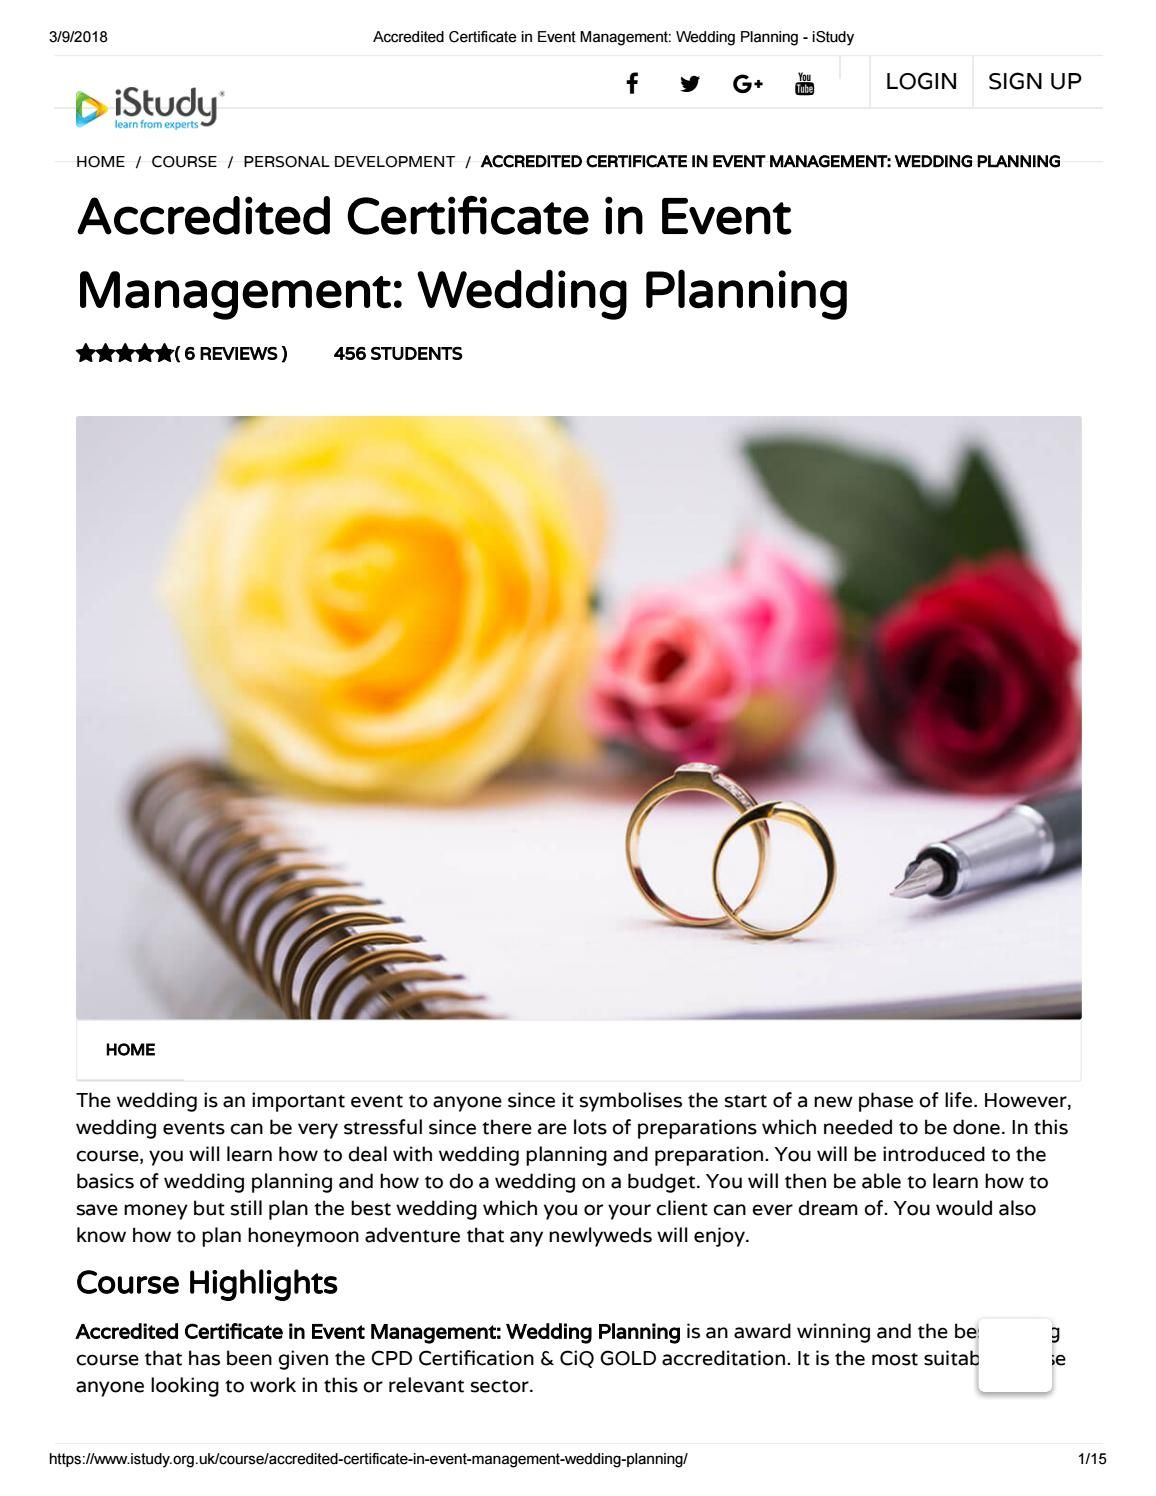 Accredited Certificate In Event Management Wedding Planning Istudy